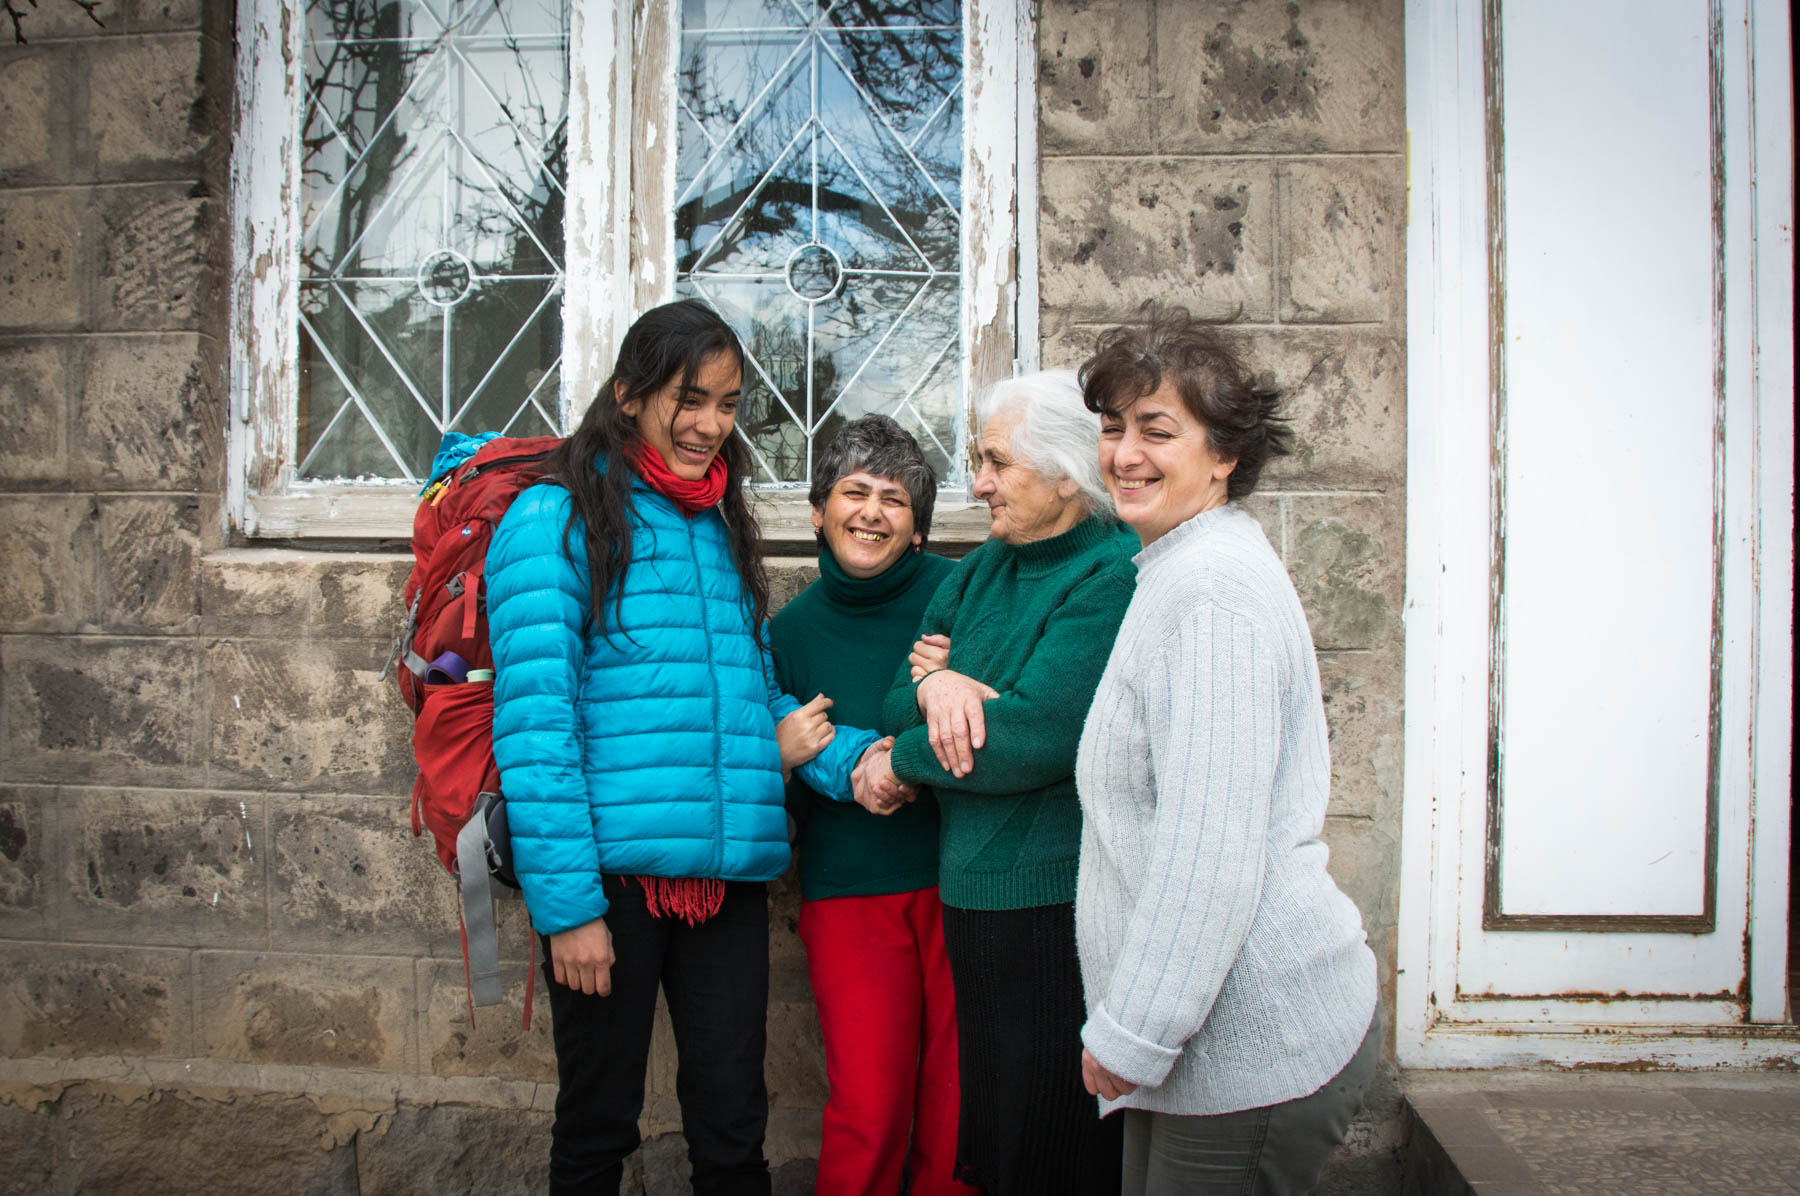 A friendly Armenian family in Gyumri, Armenia.